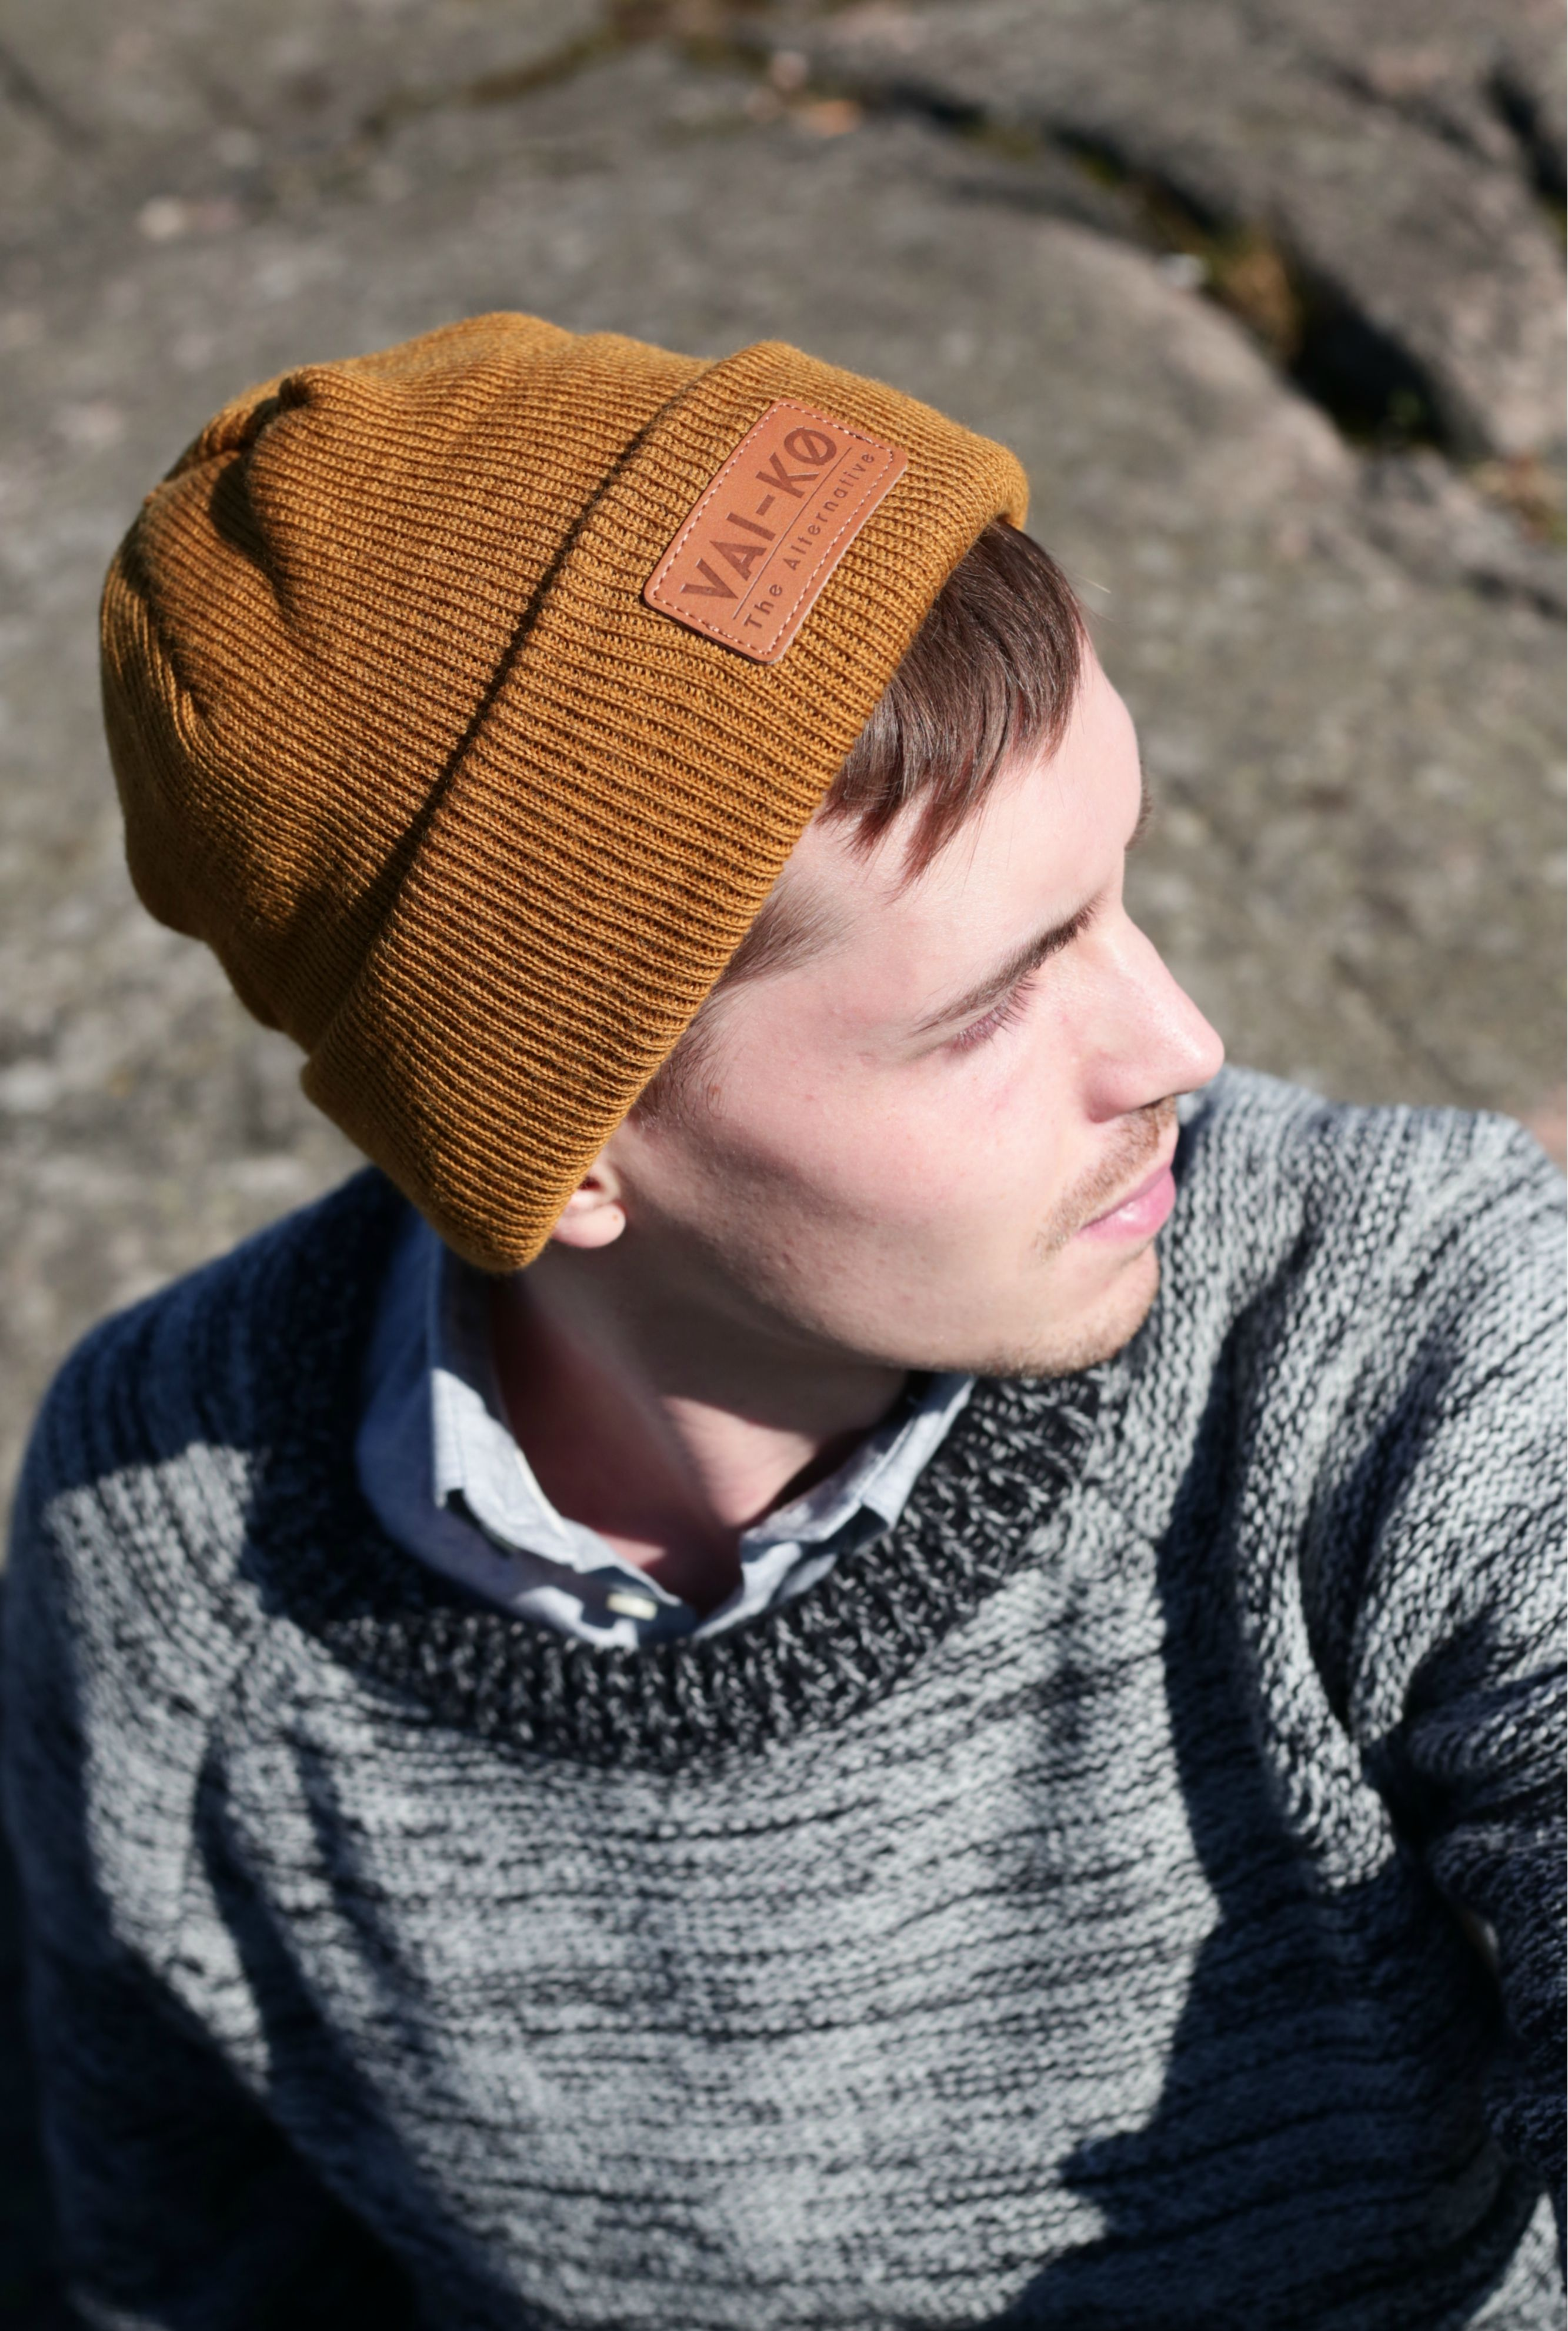 ad932c5a9ef63 Mens Wool beanie in Brown. Organic Merino Wool Beanie and cardigan outfit  for fall   autumn.